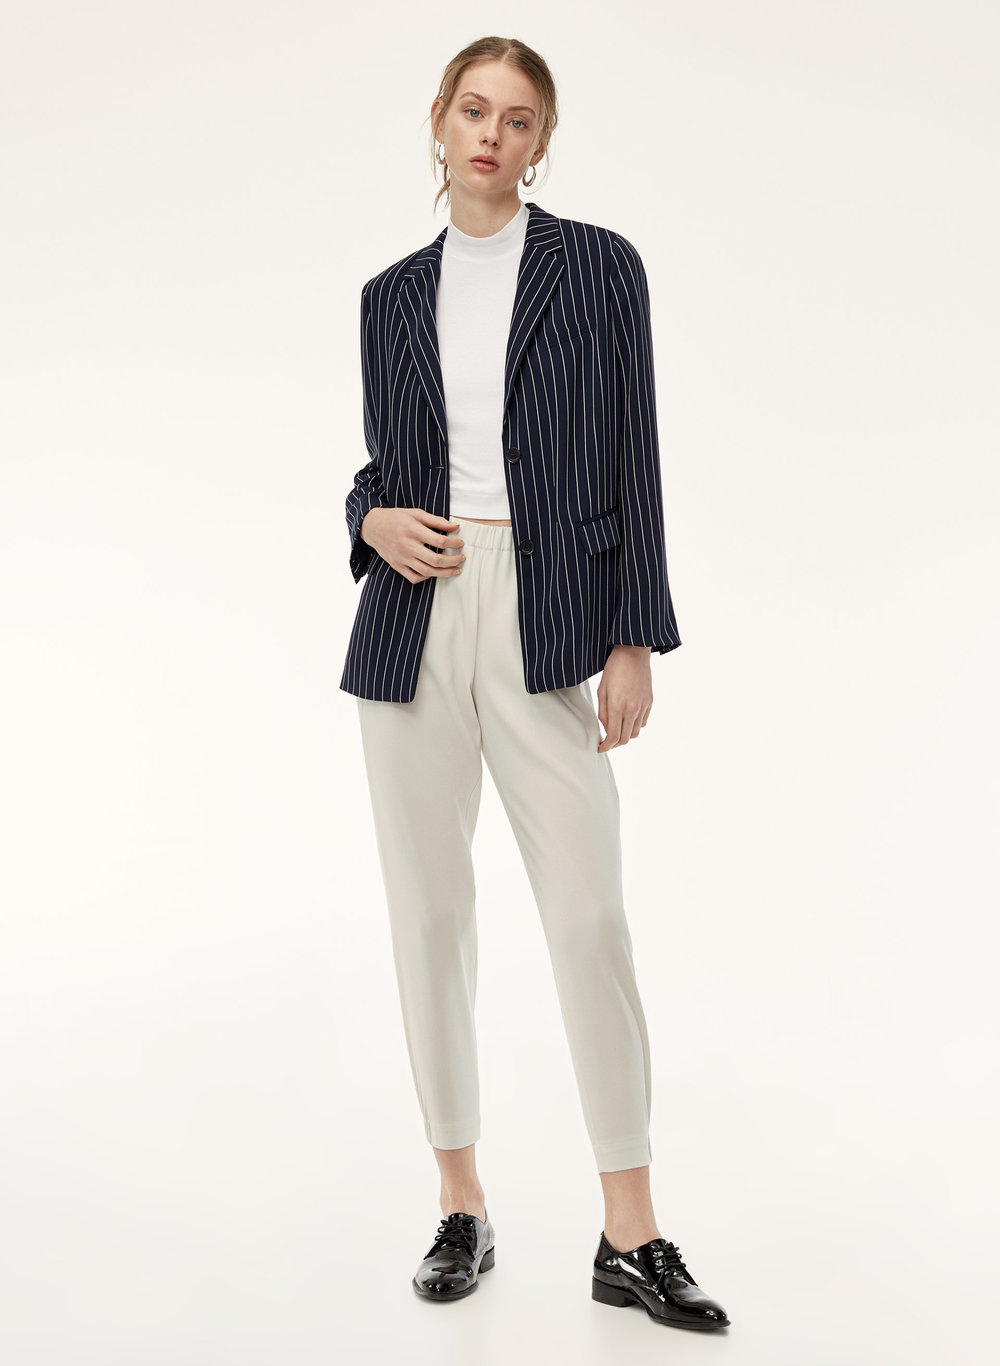 Babaton    Dexter Pant Terado. Available in multiple colors. Aritzia. Was: $148. Now: $58.